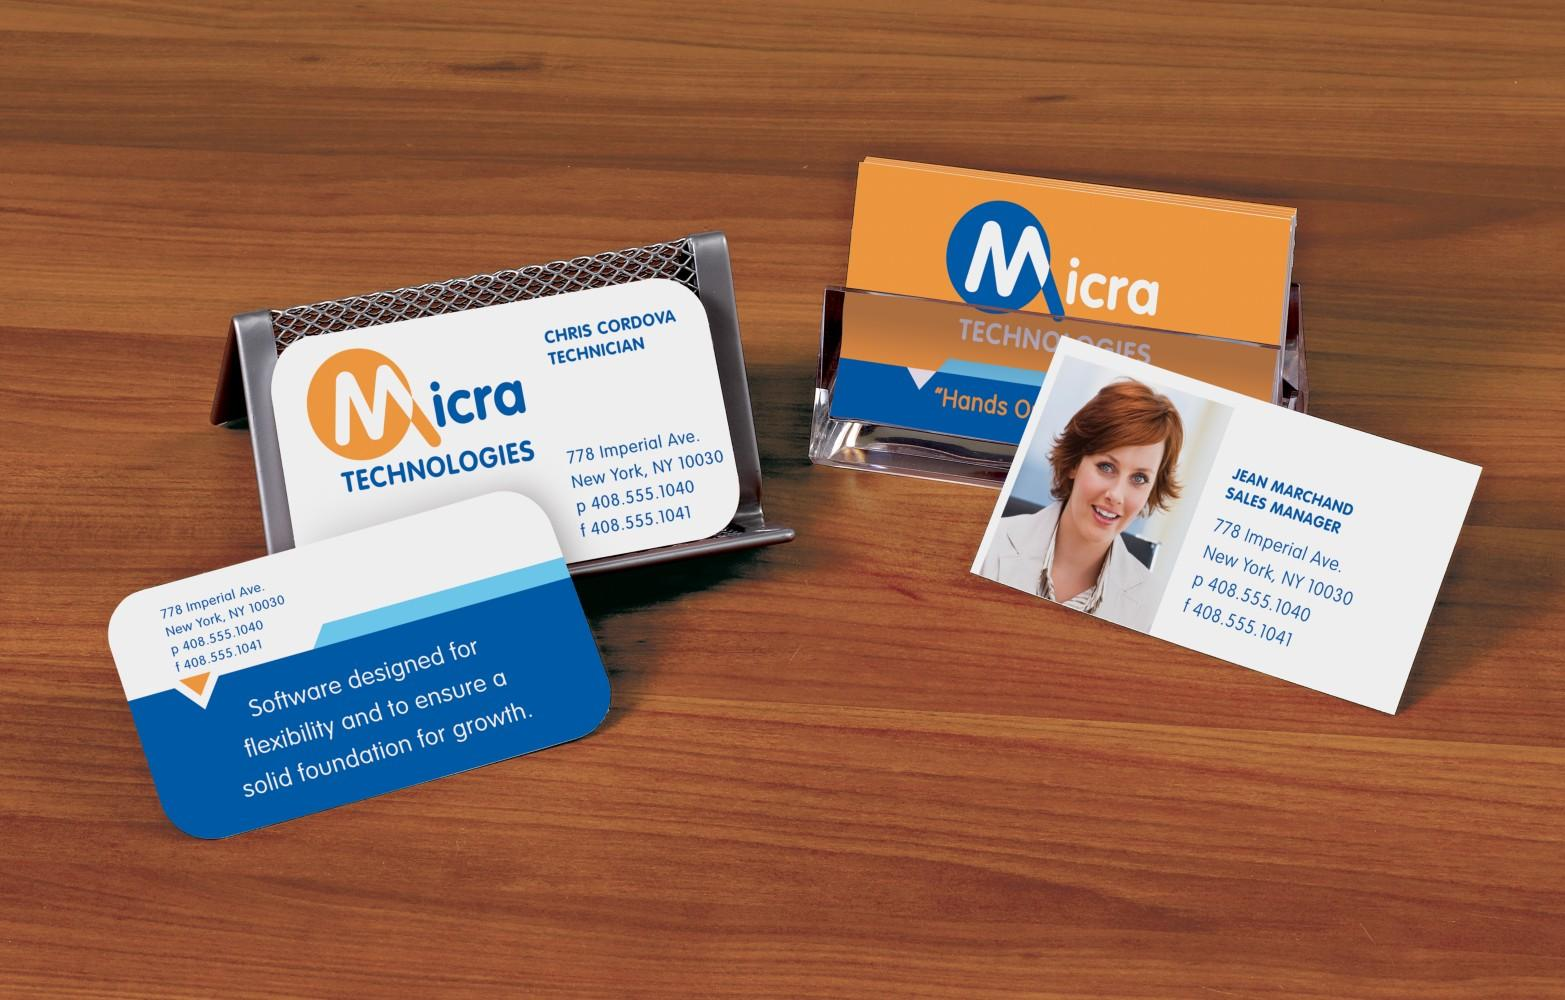 7.5 Business Card Tips to Help Double Your Business - Business Card Tips